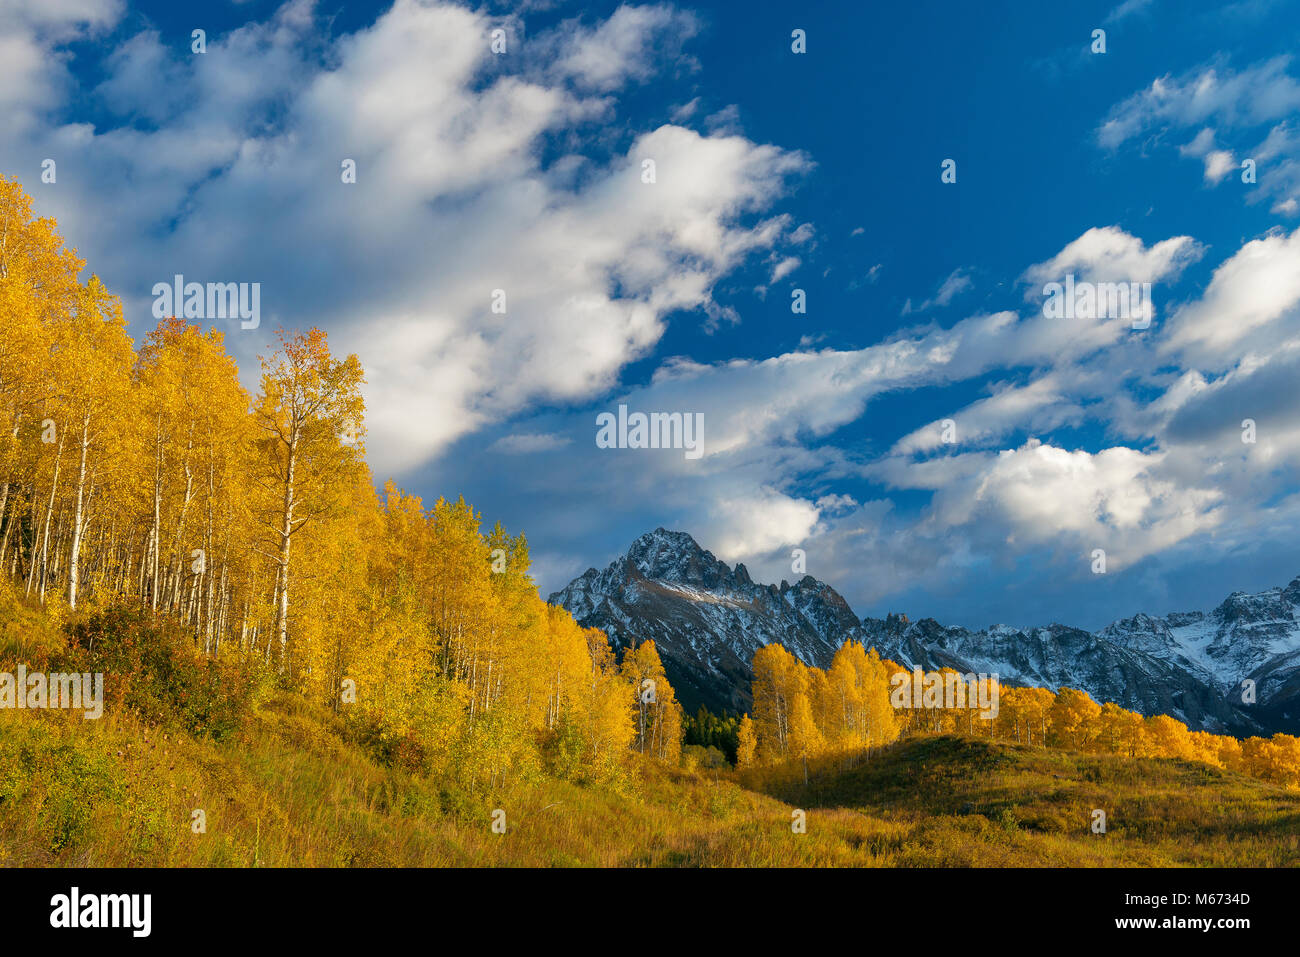 Sunset, Aspen, Populus Tremula, Mount Sneffels, Dallas Divide, Uncompahgre National Forest, Colorado - Stock Image